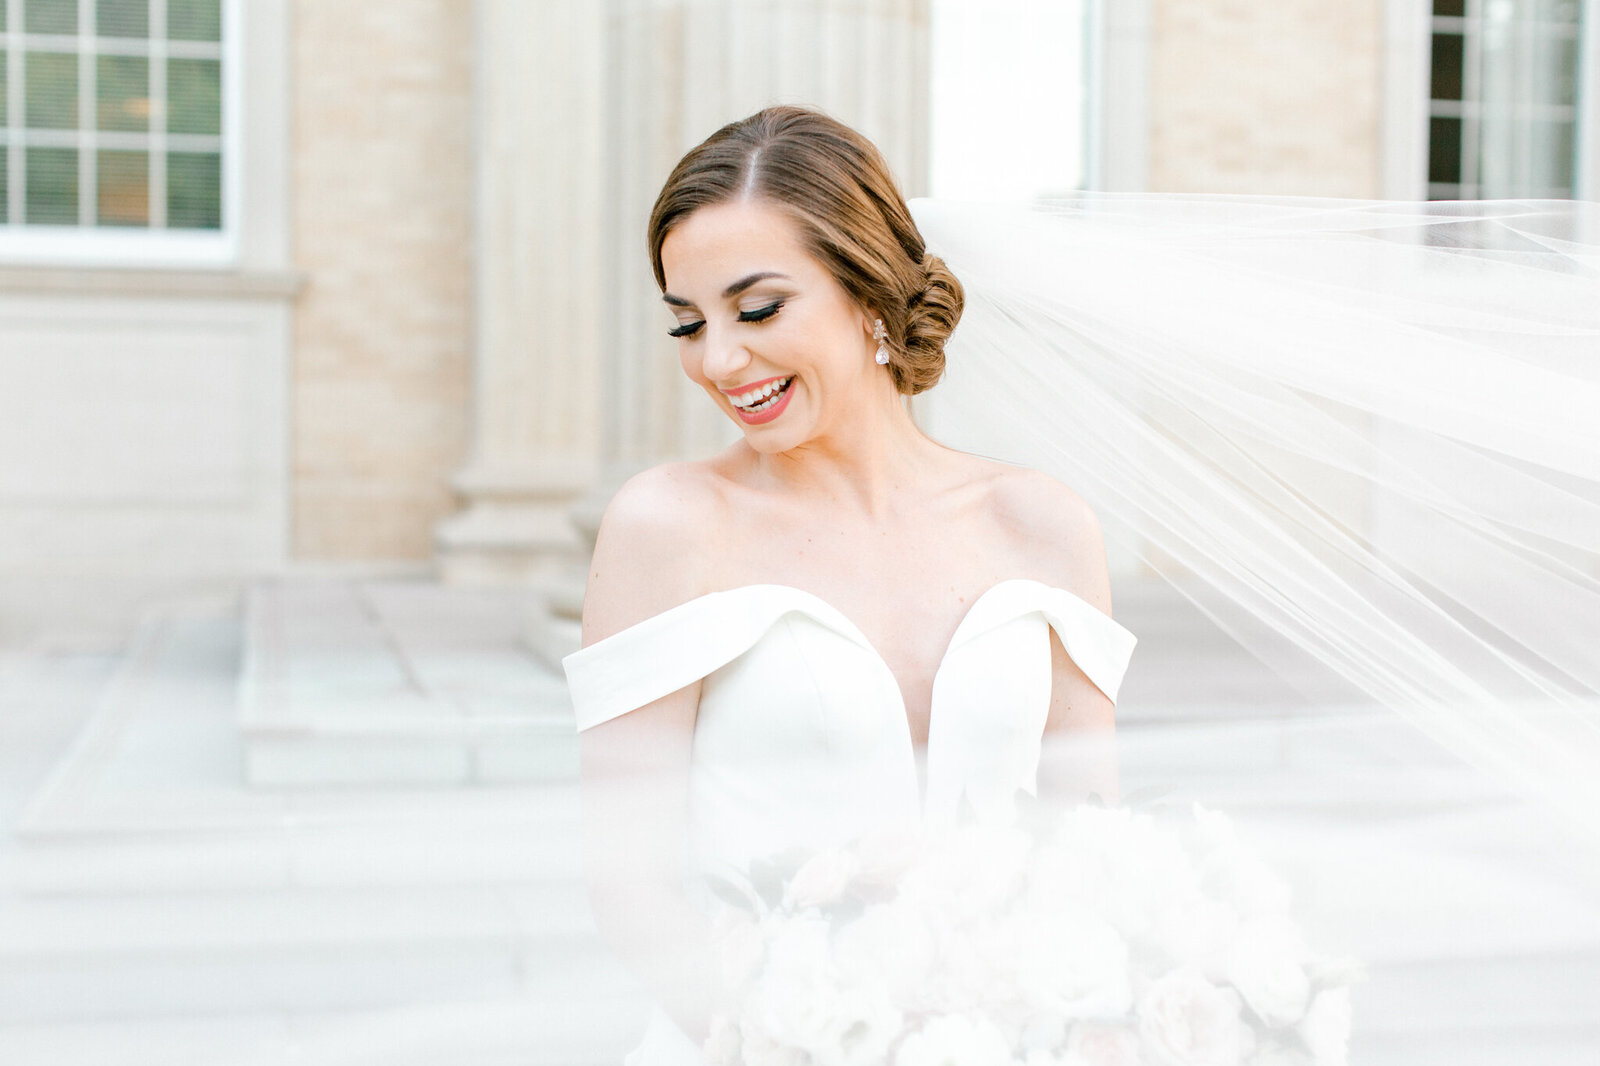 Lexi Broughton Bridal Portraits at TCU Robert Carr Chapel Fort Worth, Texas | Sami Kathryn Photography | Dallas DFW Wedding Photographer | R. Love Floral Blush and Peach Bouquet-12